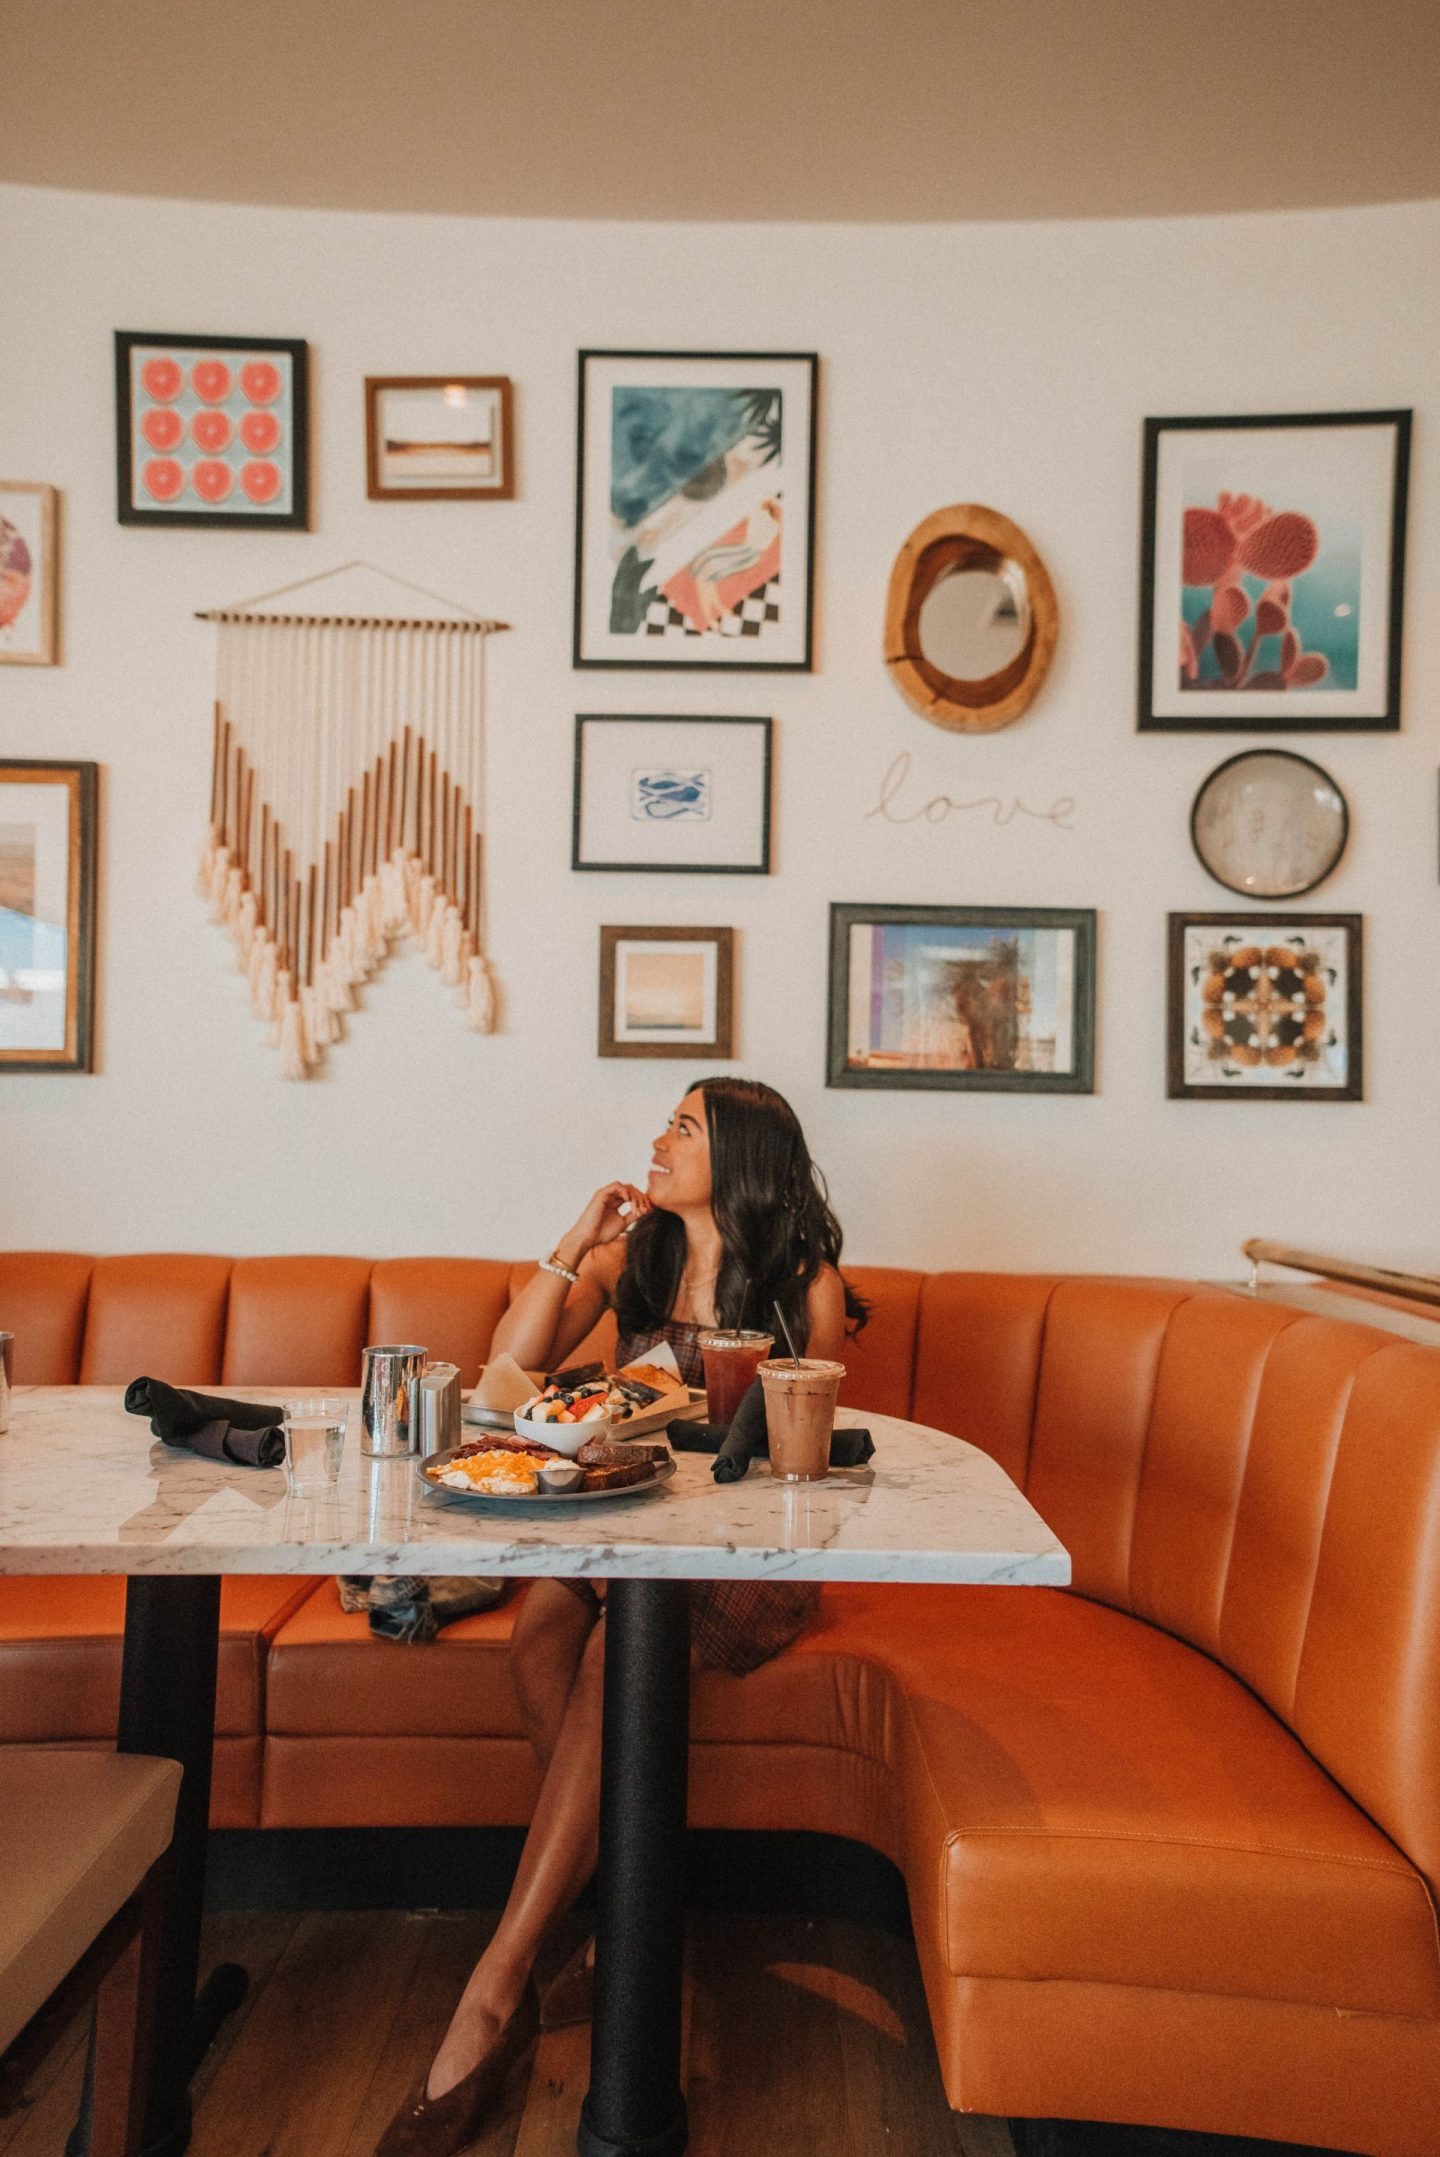 Hotel Adeline - Scottsdale Hotel Review - Scottsdale Hotels - Phoenix Hotels - Where to stay in Scottsdale - Old Town Scottsdale Hotels